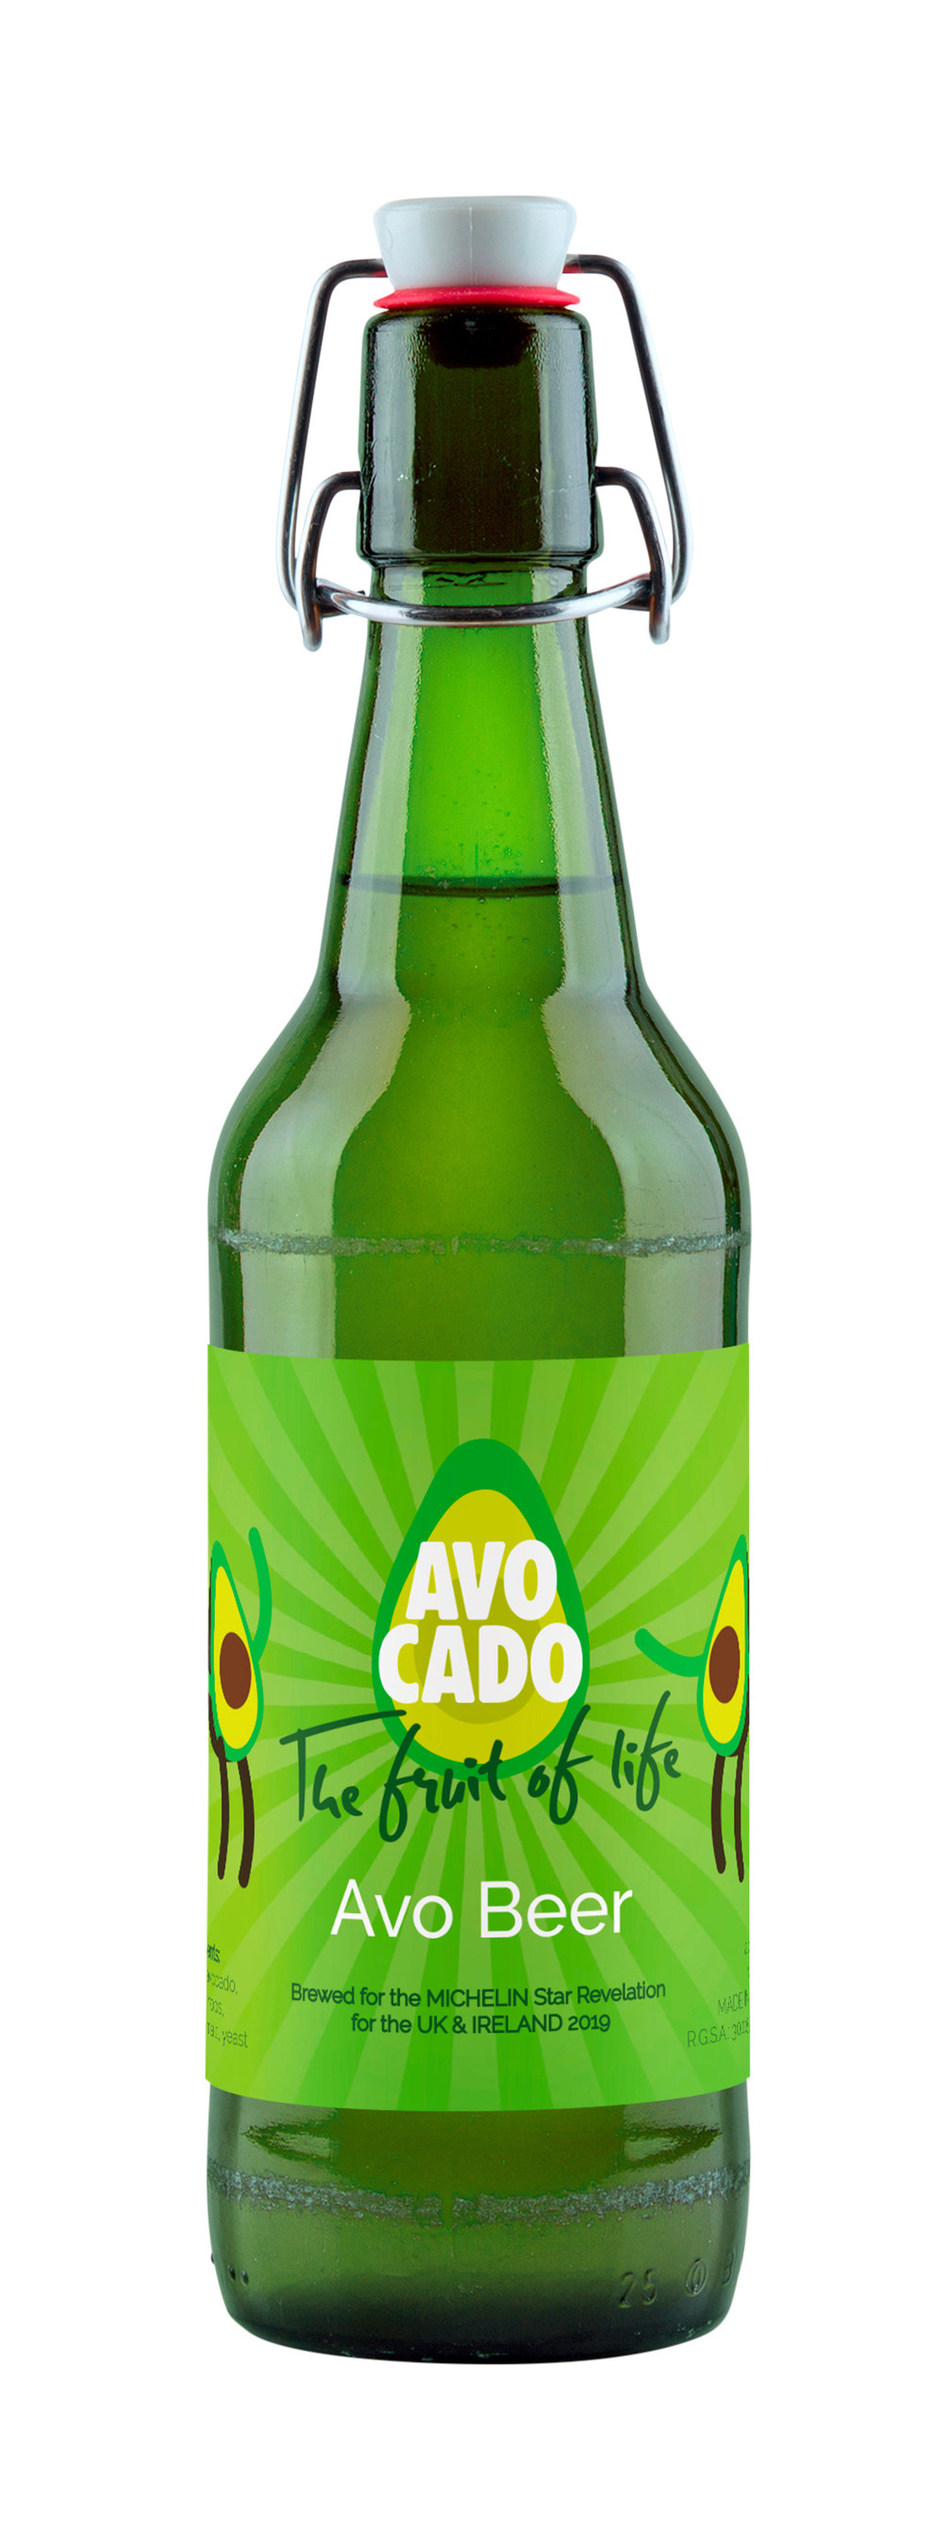 WAO to Unveil the First Ever Avocado Beer in France During the Michelin Guide Event.